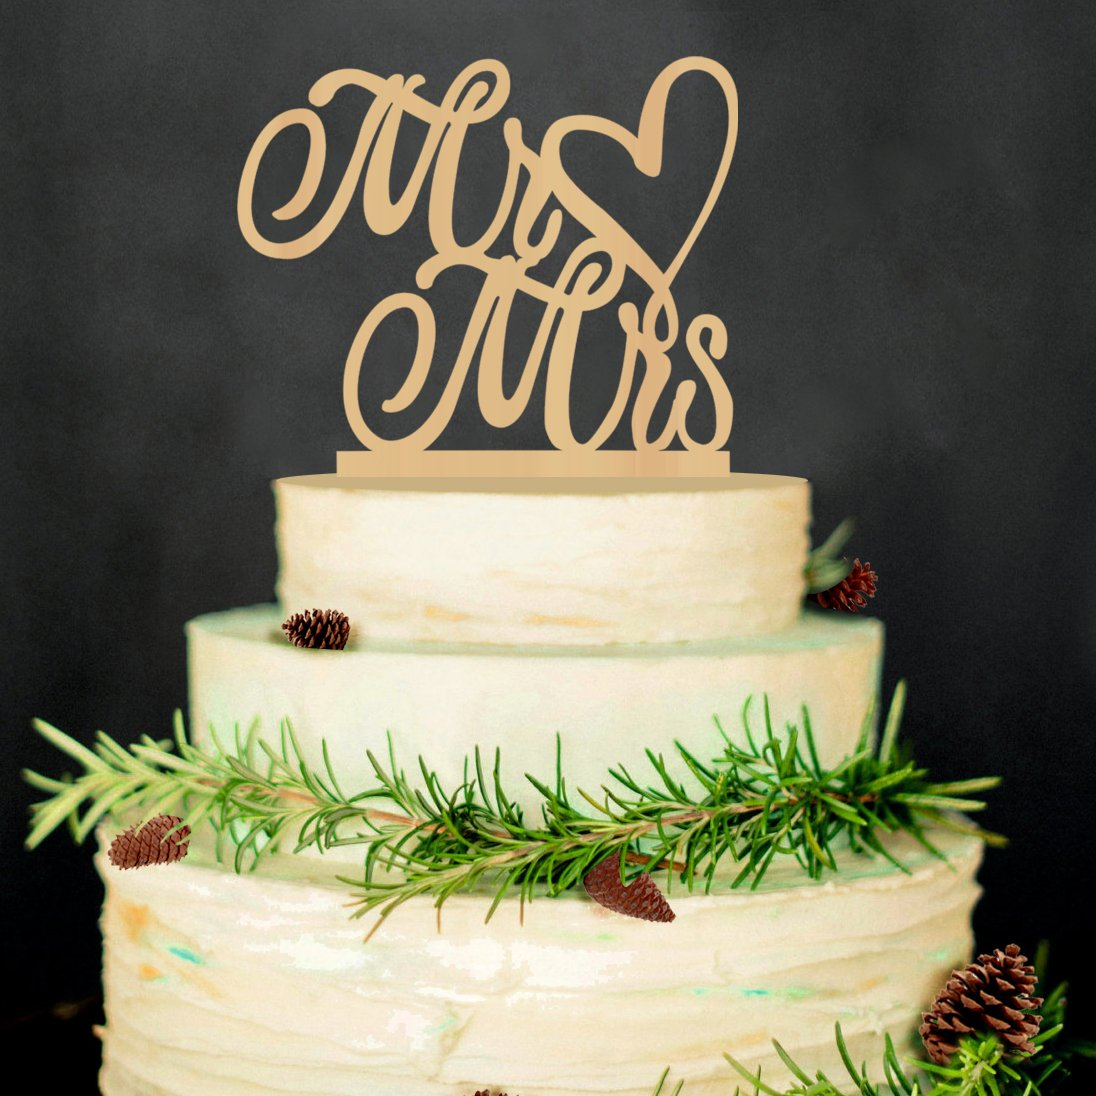 Mr and Mrs wedding Cake Toppers Heart Rustic Wood For Wedding Aniversary Party Engagement Decoration